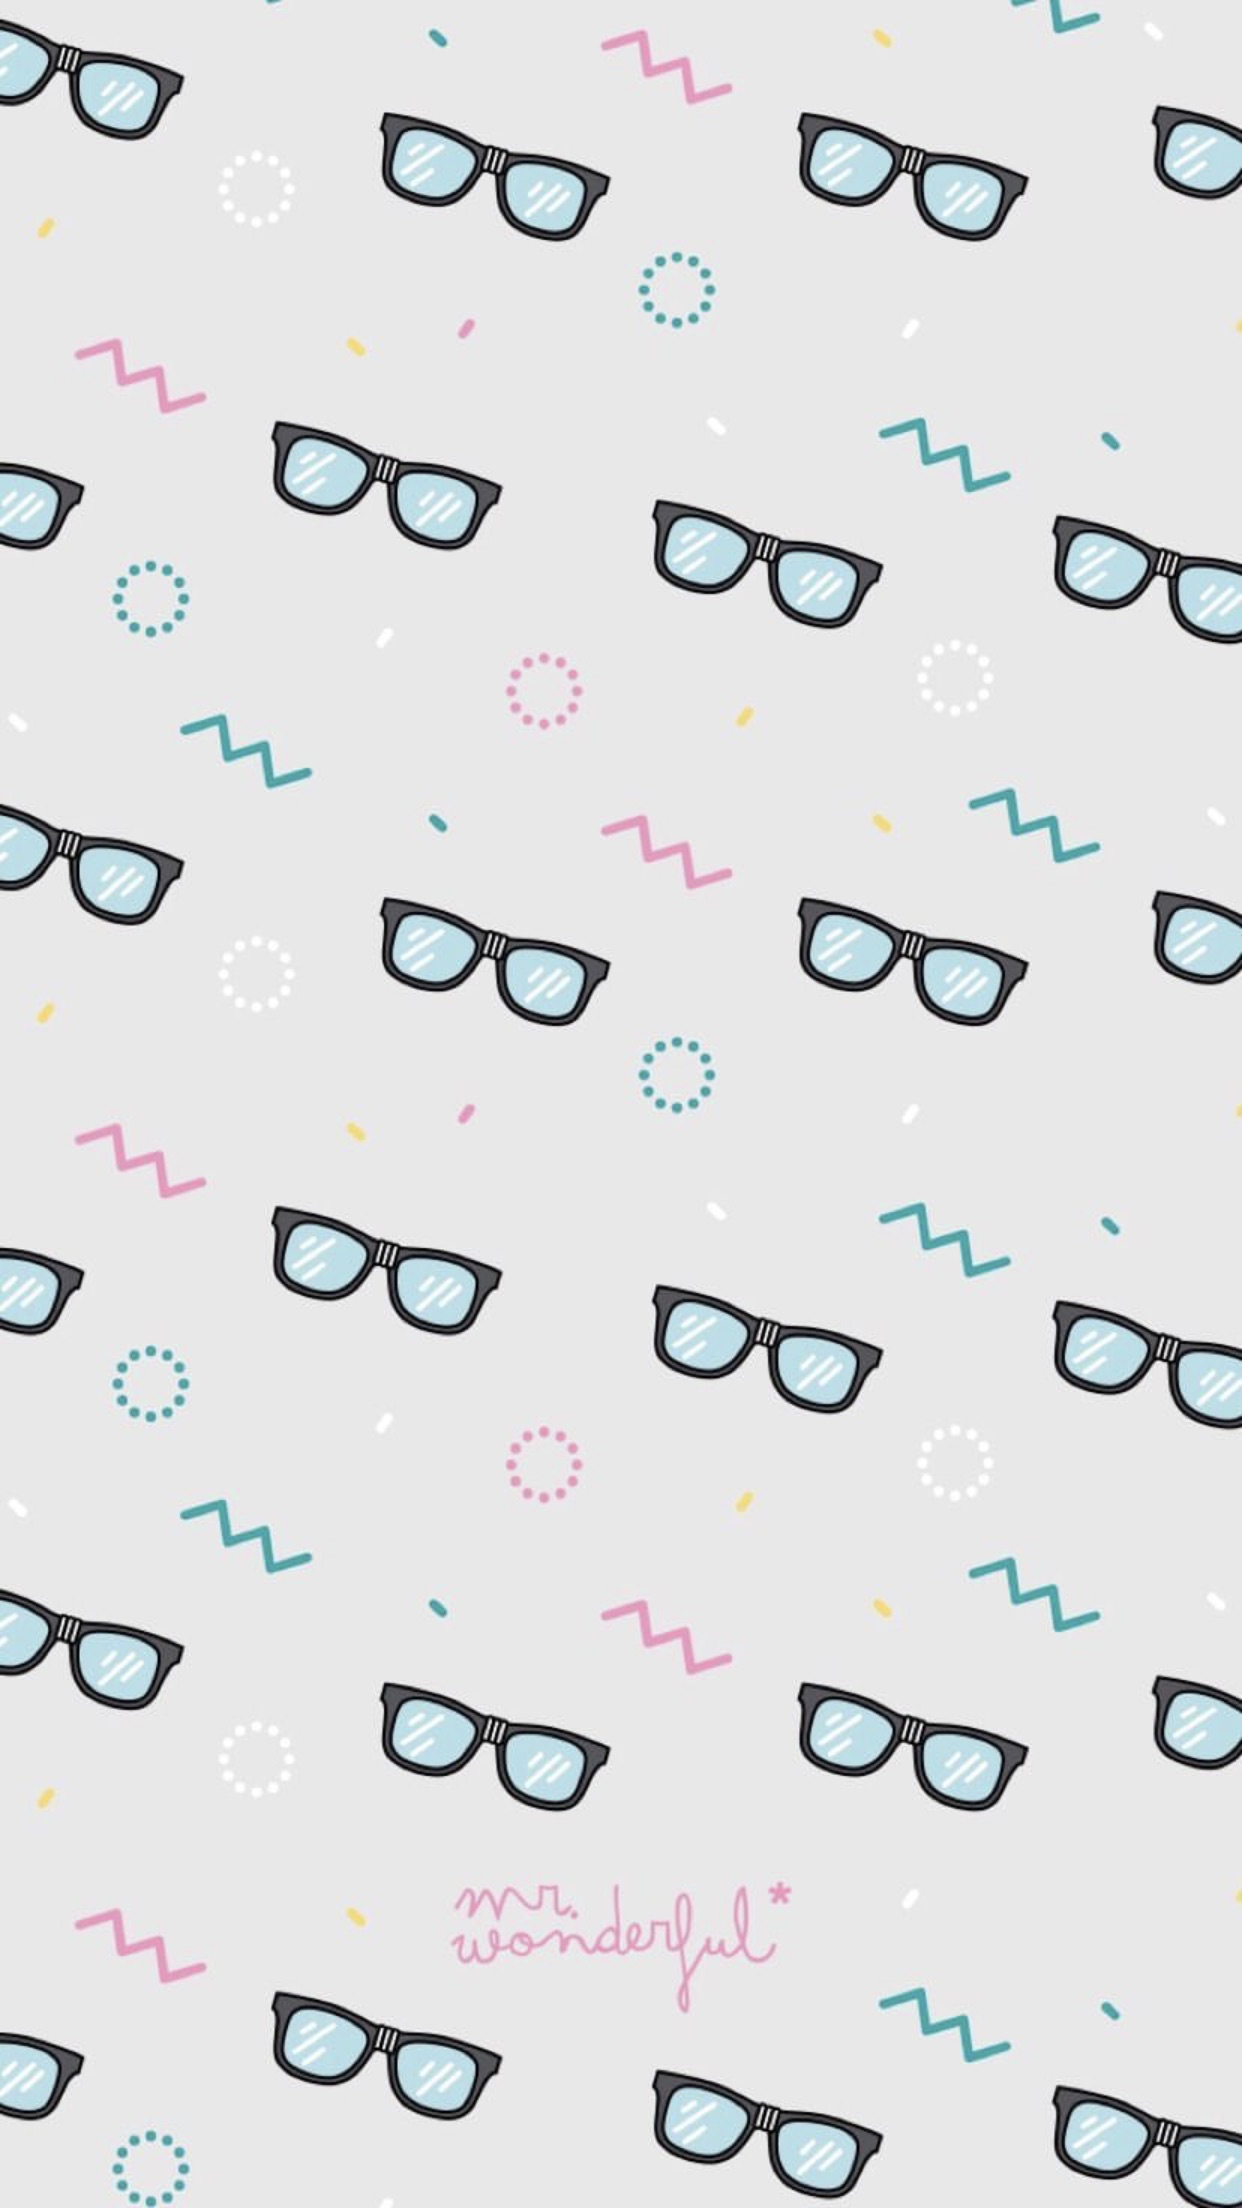 fondos de pantalla, fondo de pantalla, fondo de pantalla divertido, fondo de pantalla femenino, girly backgrounds, cool background, colorful backfround, fondo de pantalla patron, pattern, fondo de pantalla de lentes.